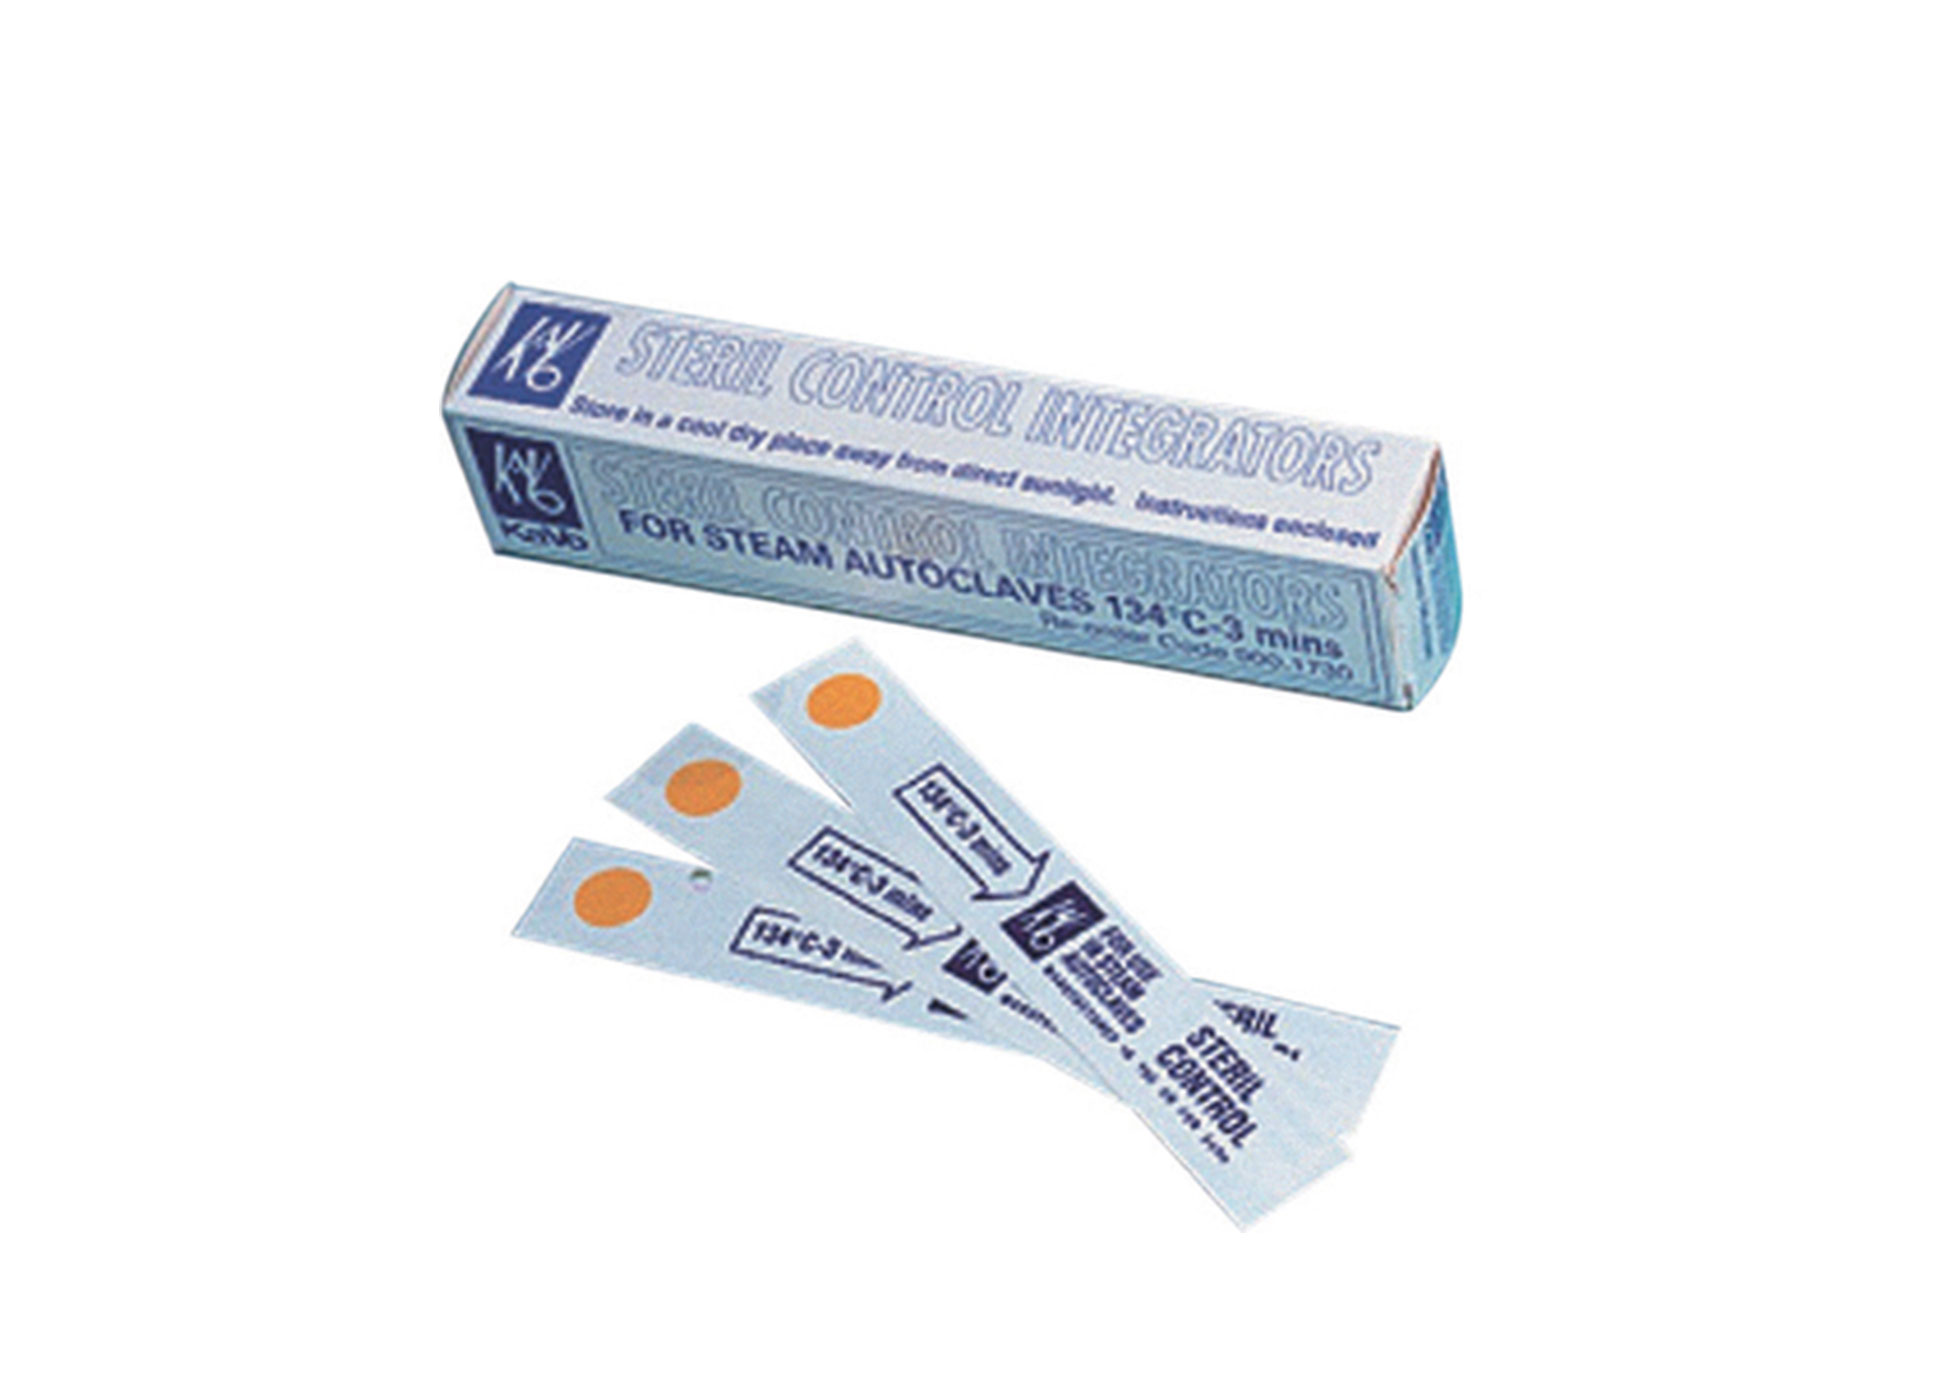 Podiaclave Accessories - Test Strips - Box 100